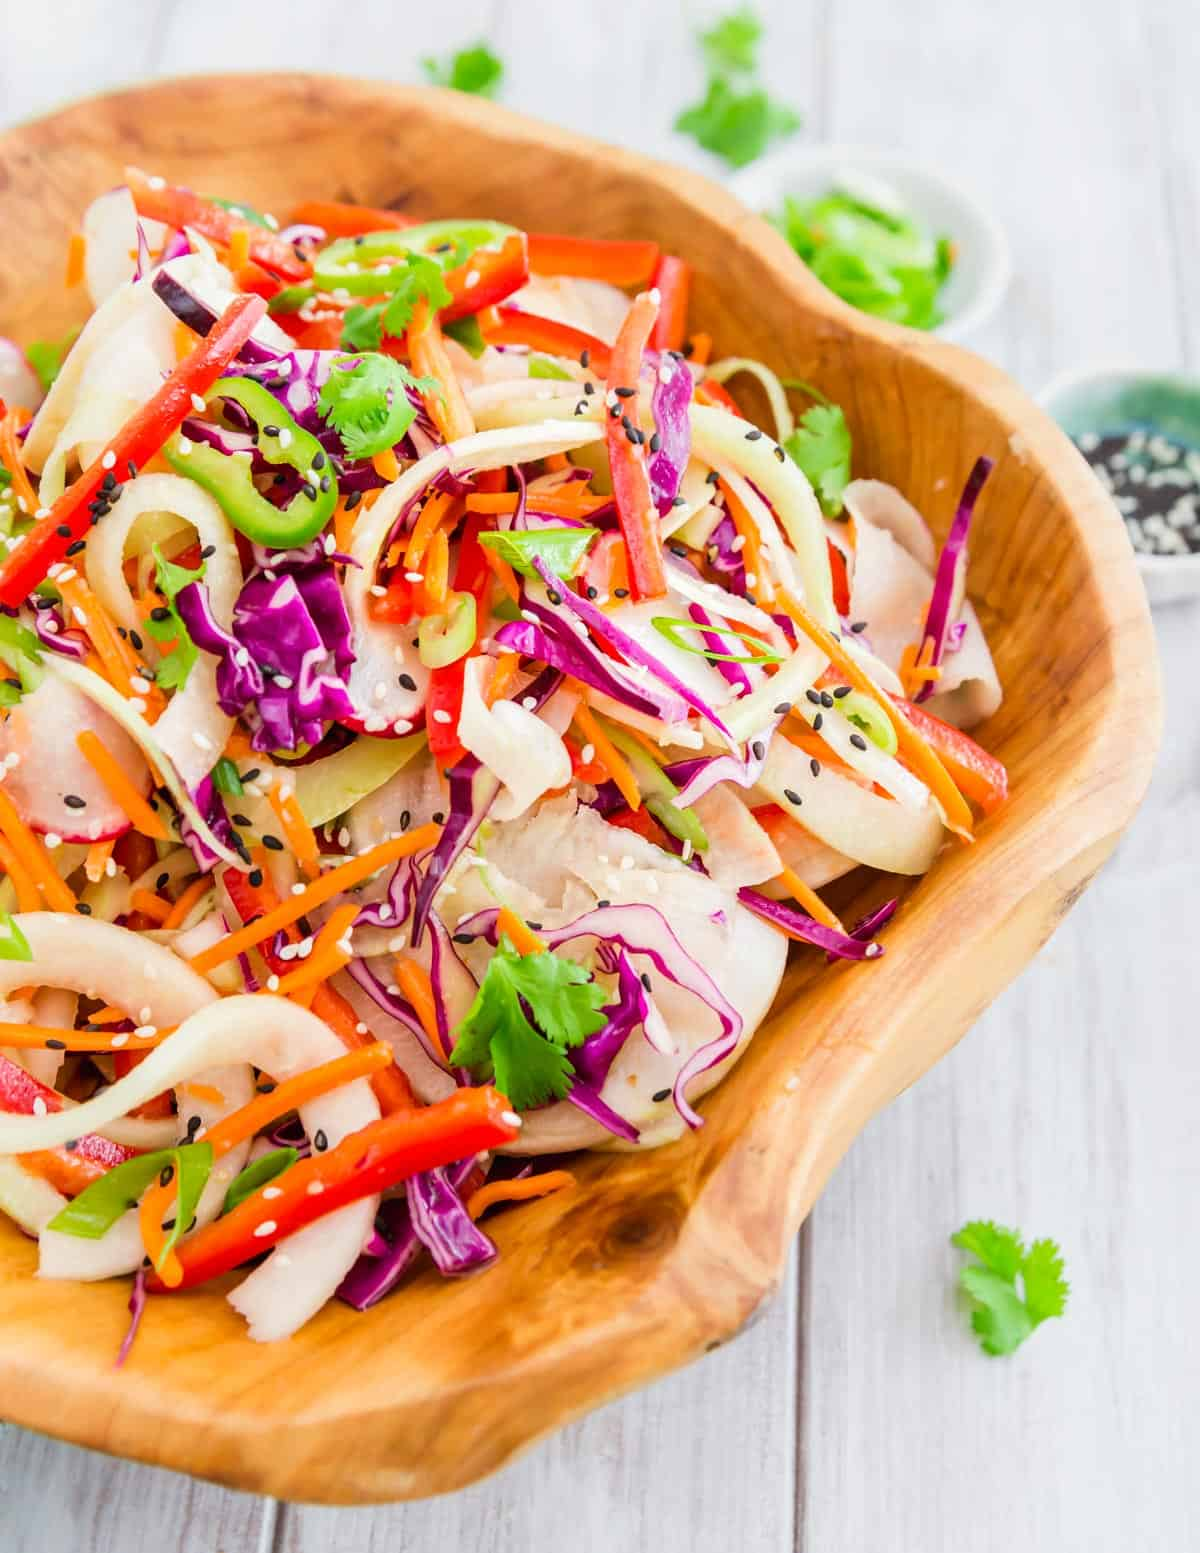 A simple kohlrabi noodle recipe that takes inspiration from the flavors and ingredients of a Thai salad.